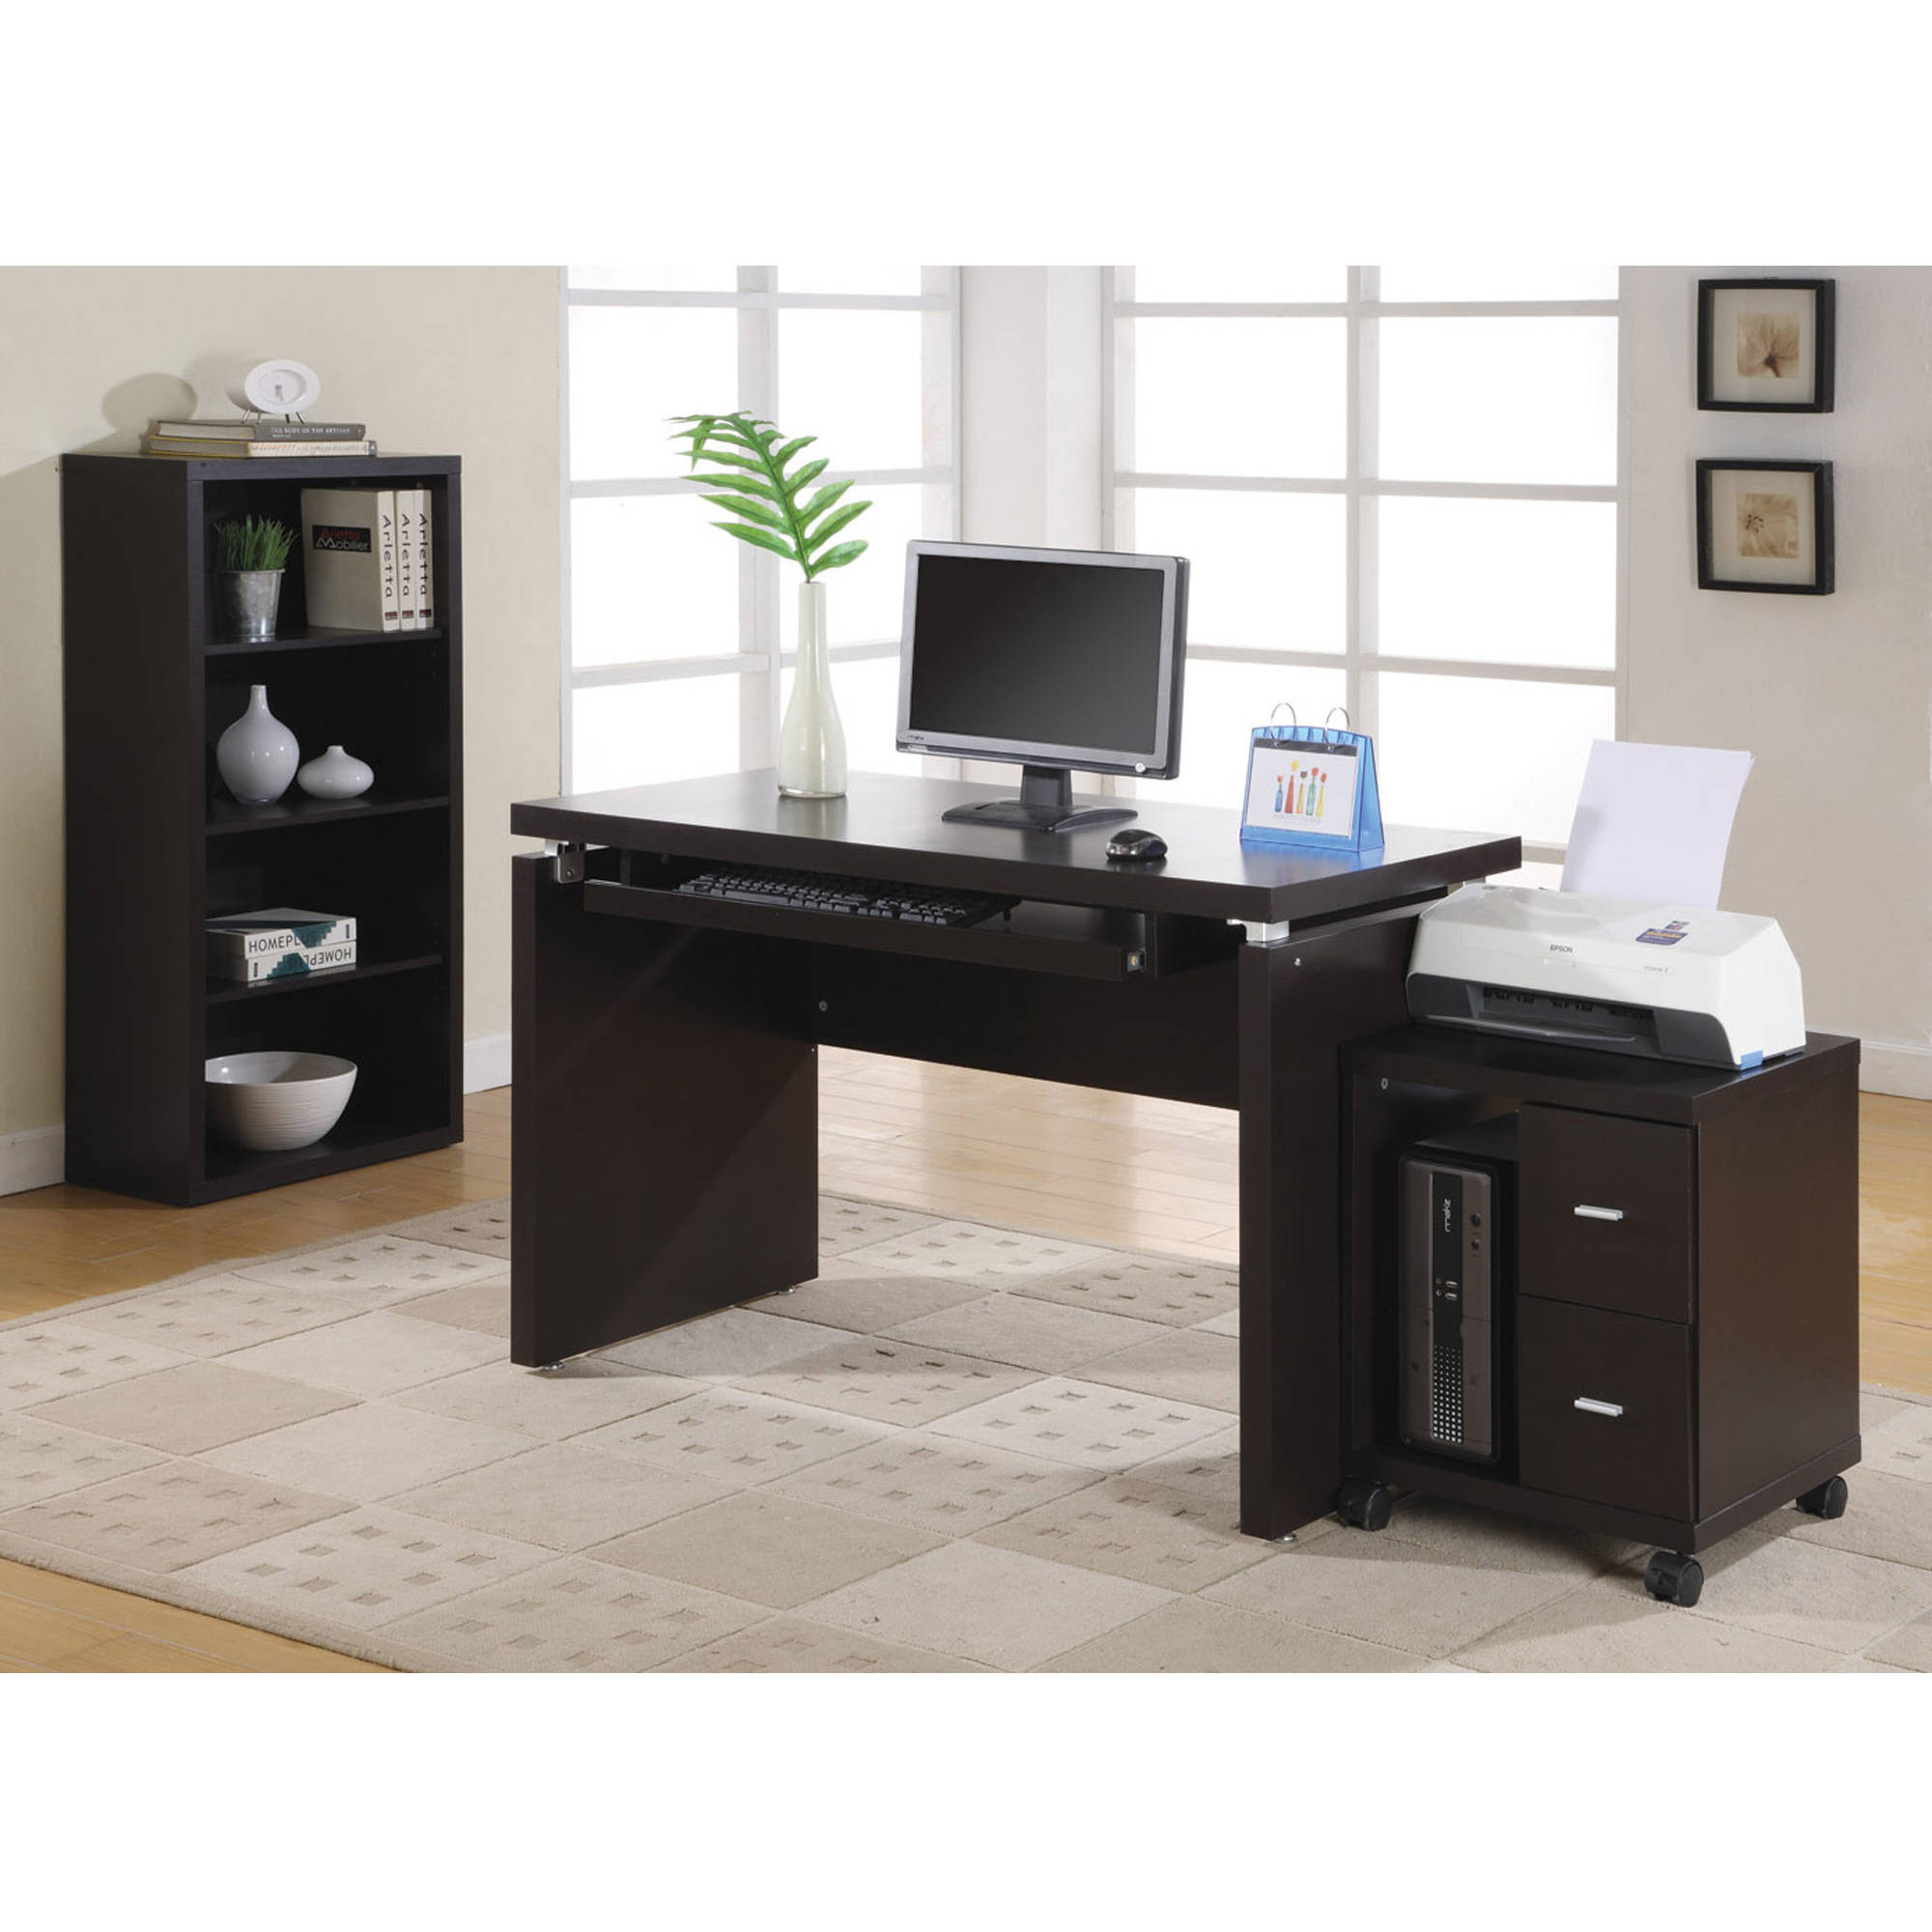 Monarch Office Cabinet Cappuccino 2 Drawer On Castors Walmartcom